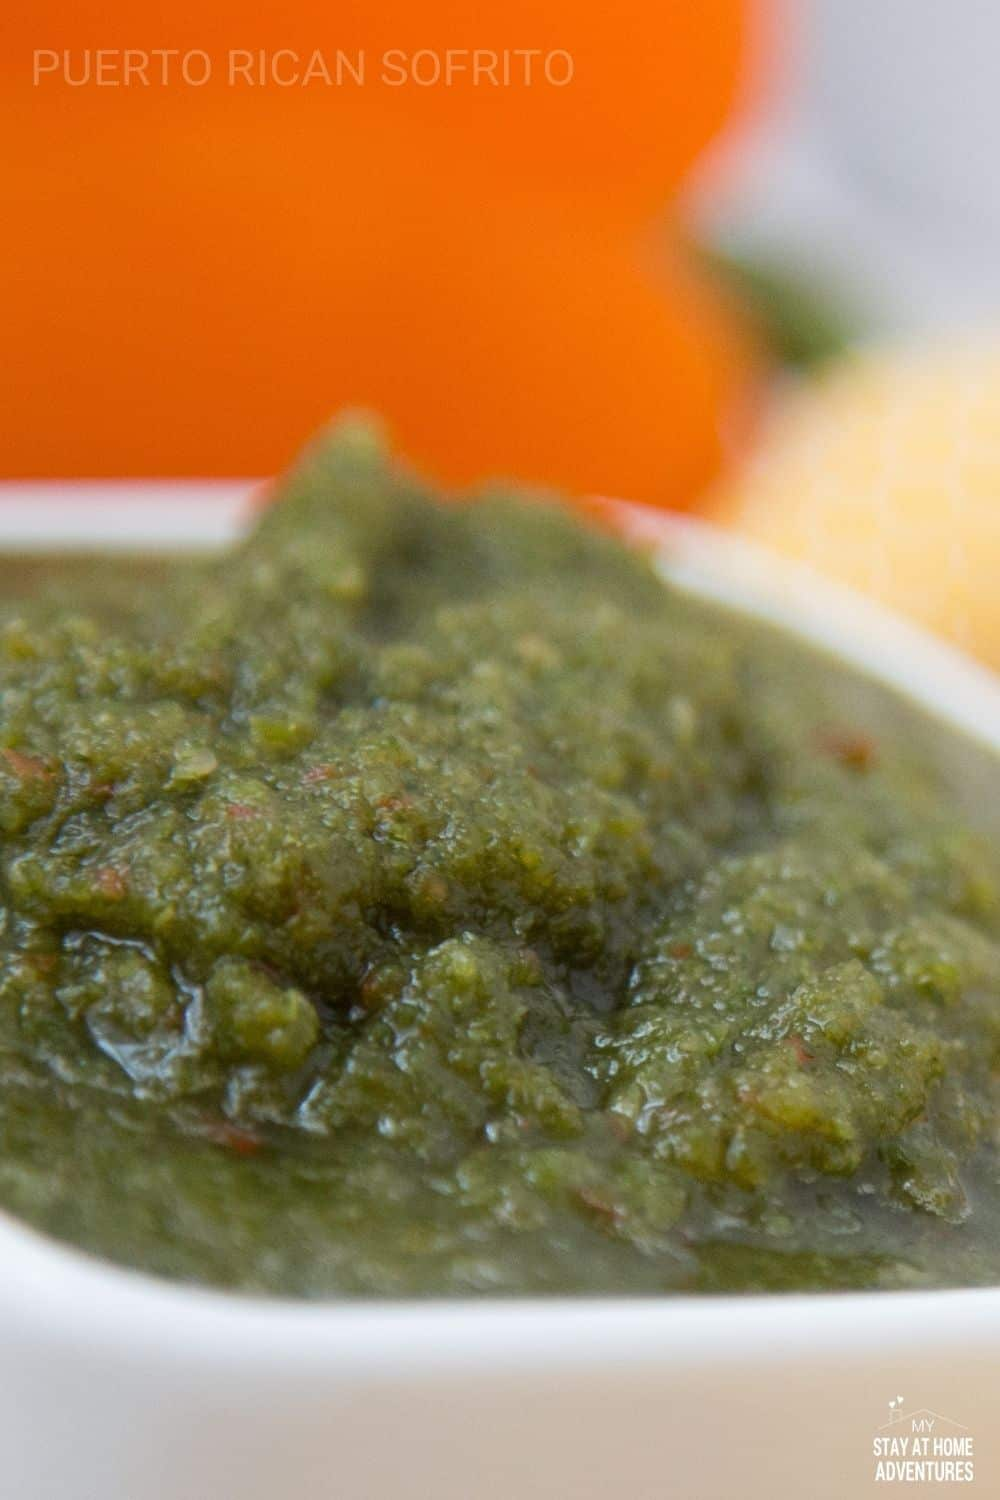 Learn what Puerto Rican sofrito is and what makes it different from the rest. Learn how to find culantro anywhere in the US and make this recipe at home. #sofrito #puertoricansofrito #sofritorecipe via @mystayathome